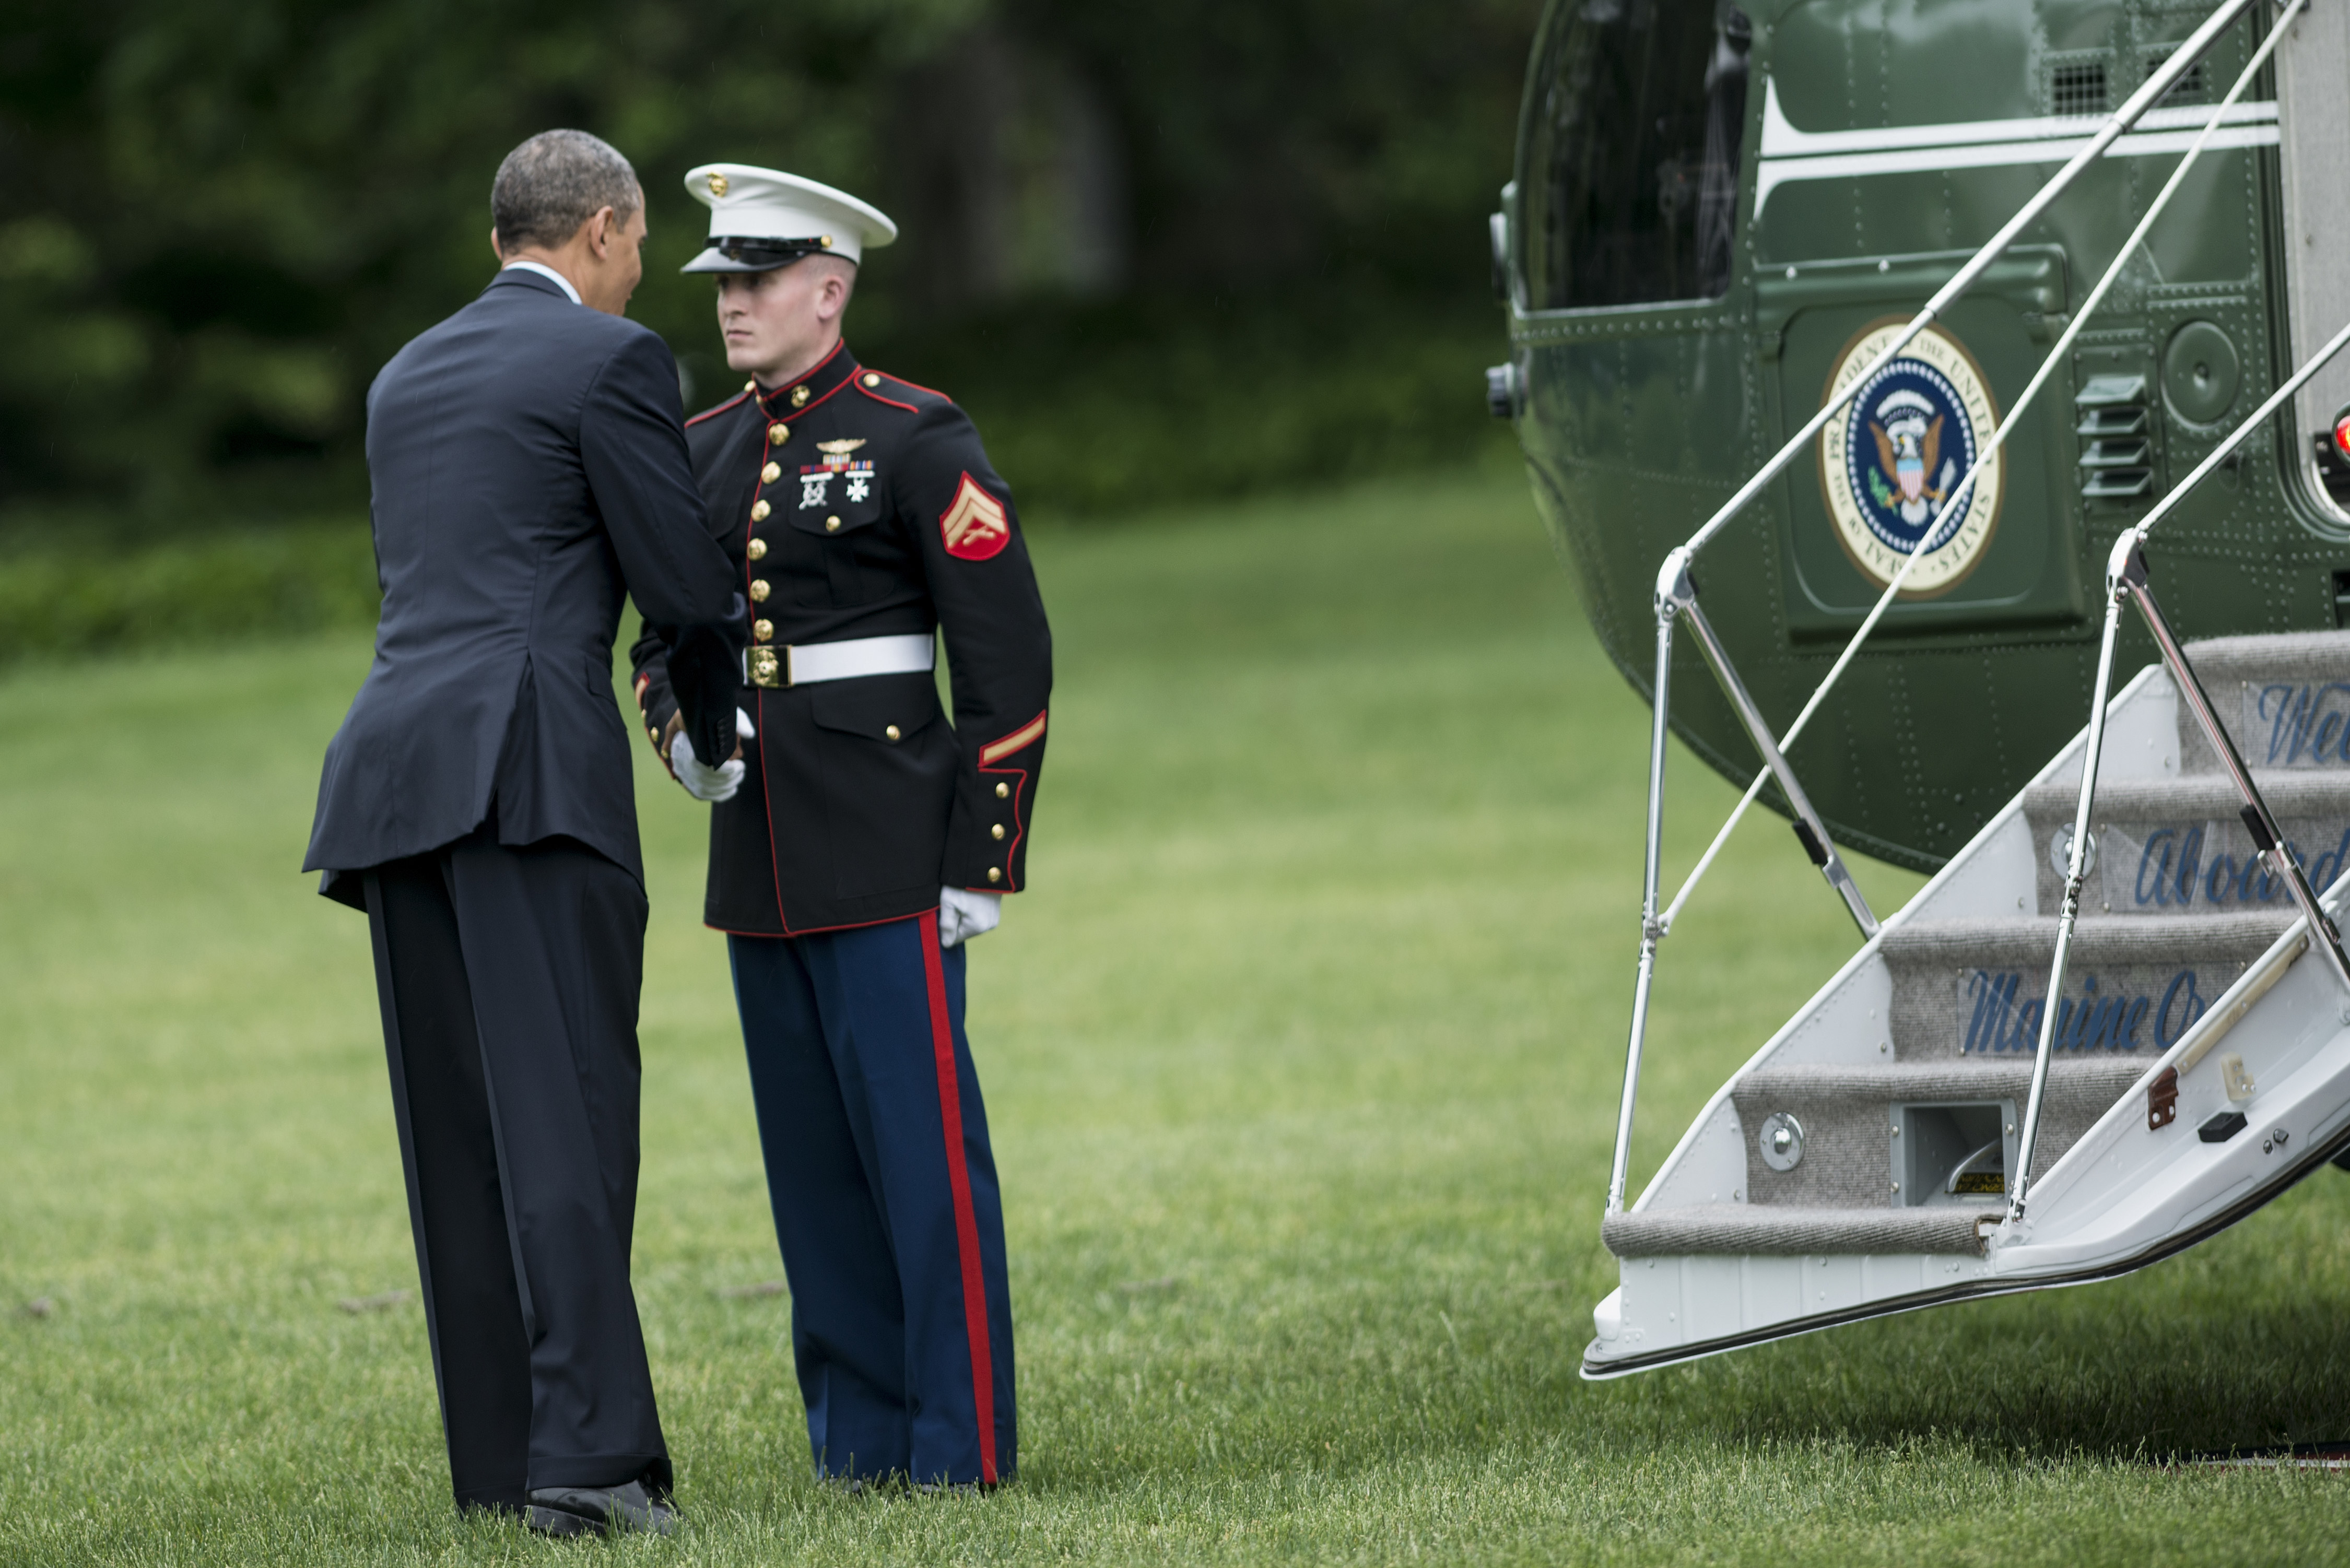 Obama Forgets To Salute; Sparks Debate On Presidential Tradition